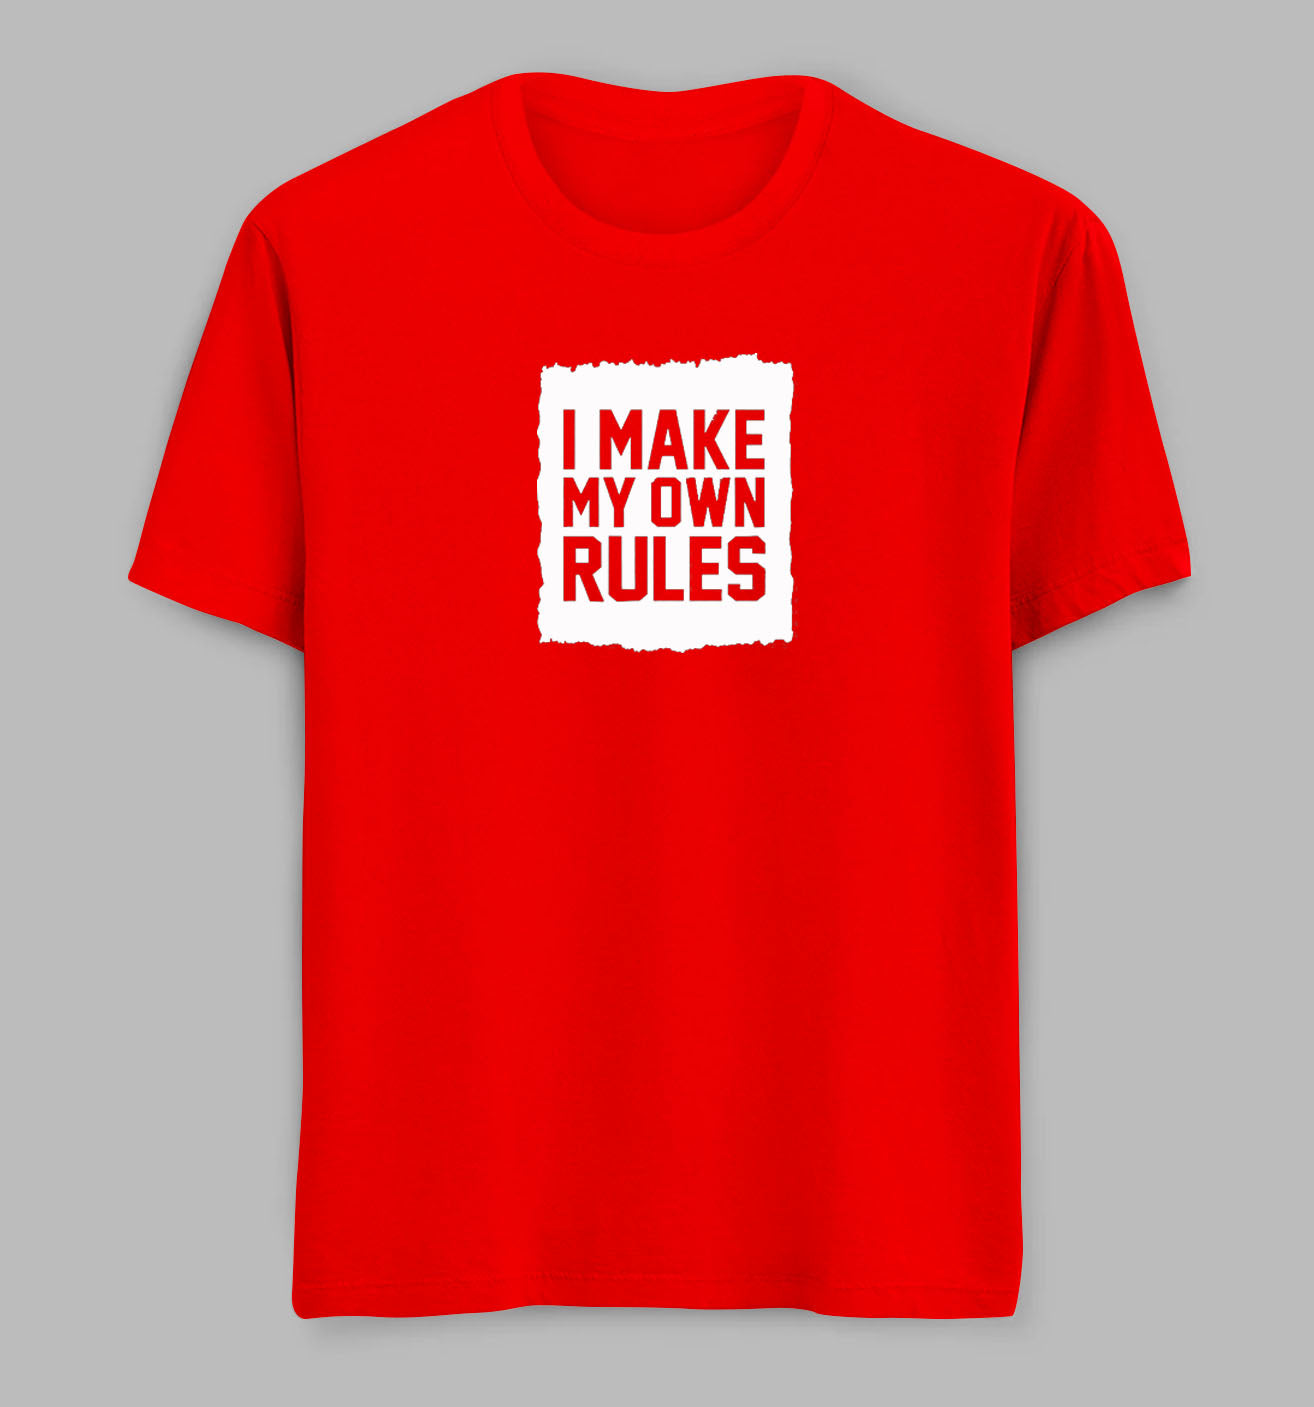 Make Own Rules Tees/ Tshirts